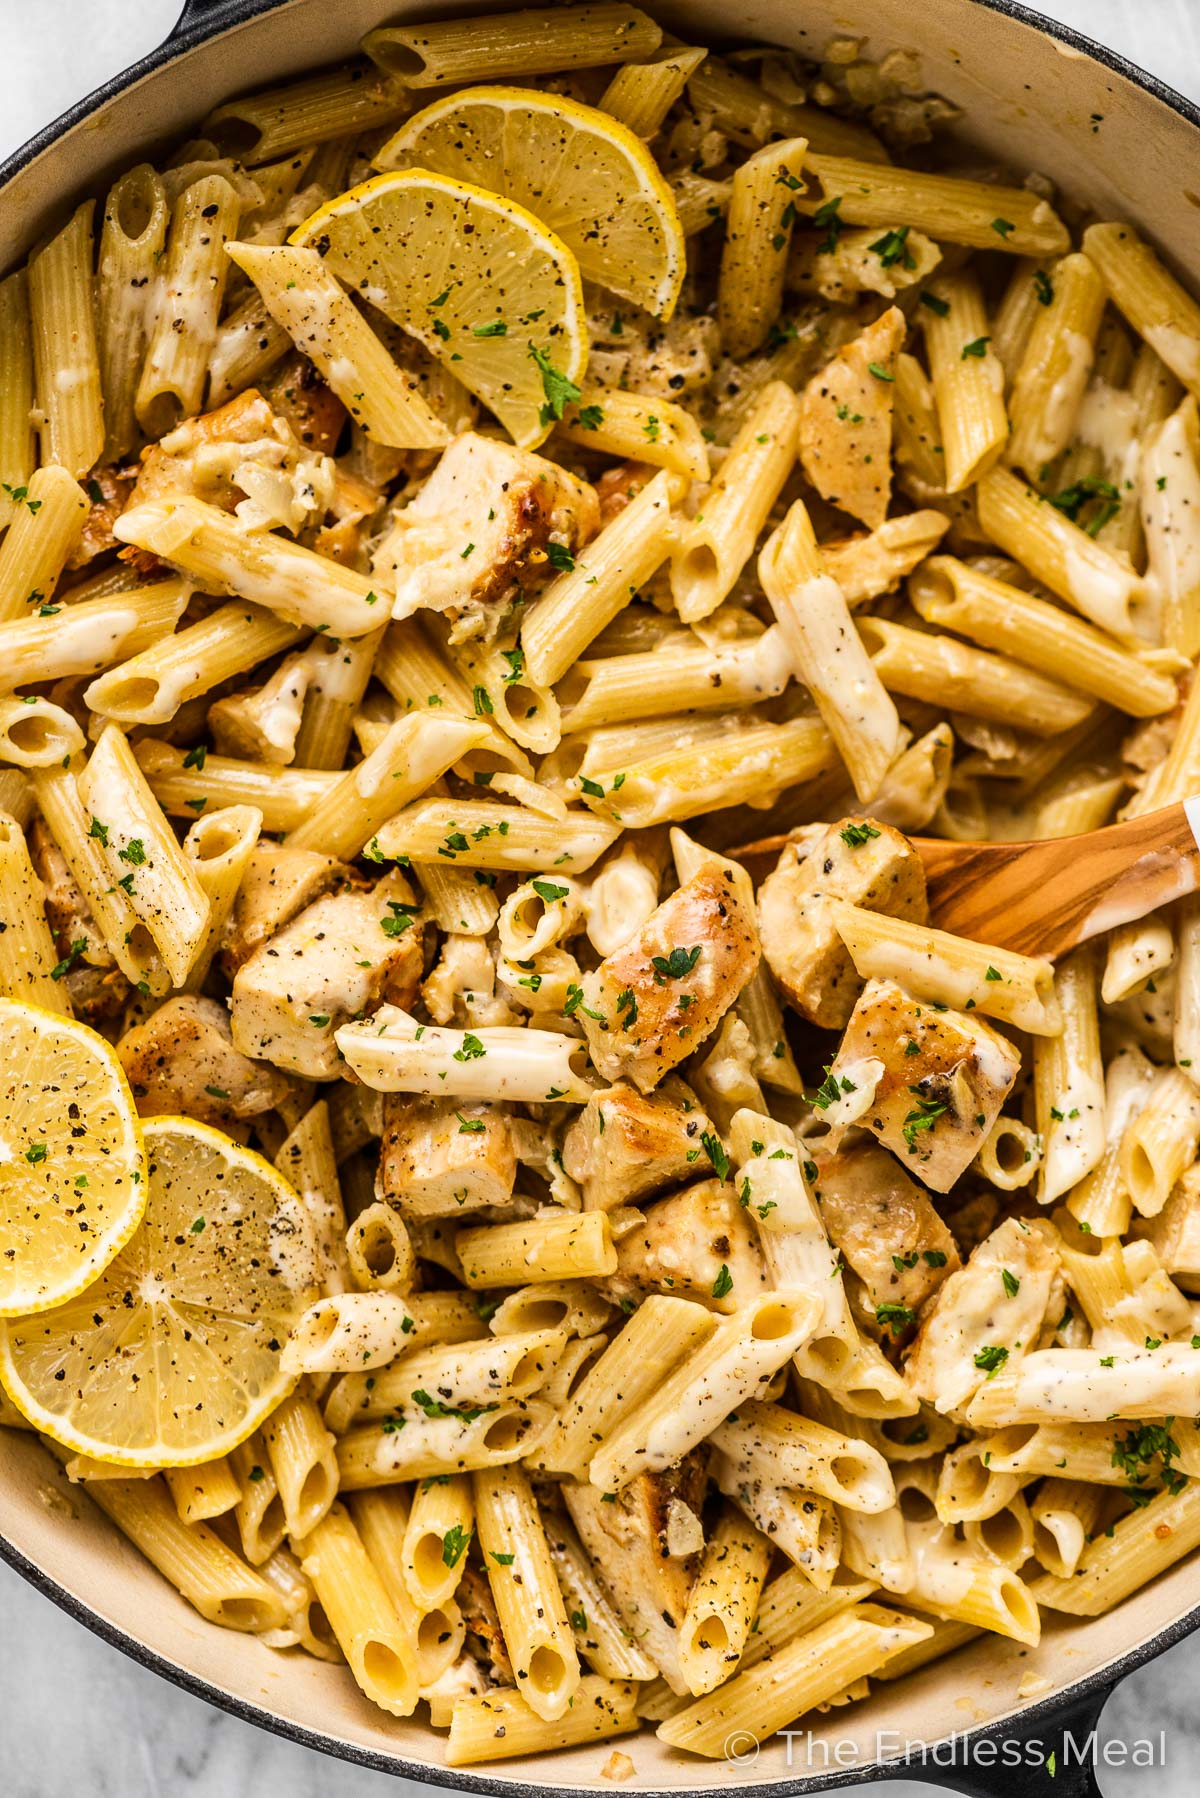 A close up of lemon chicken pasta in a pan with a wooden spoon.